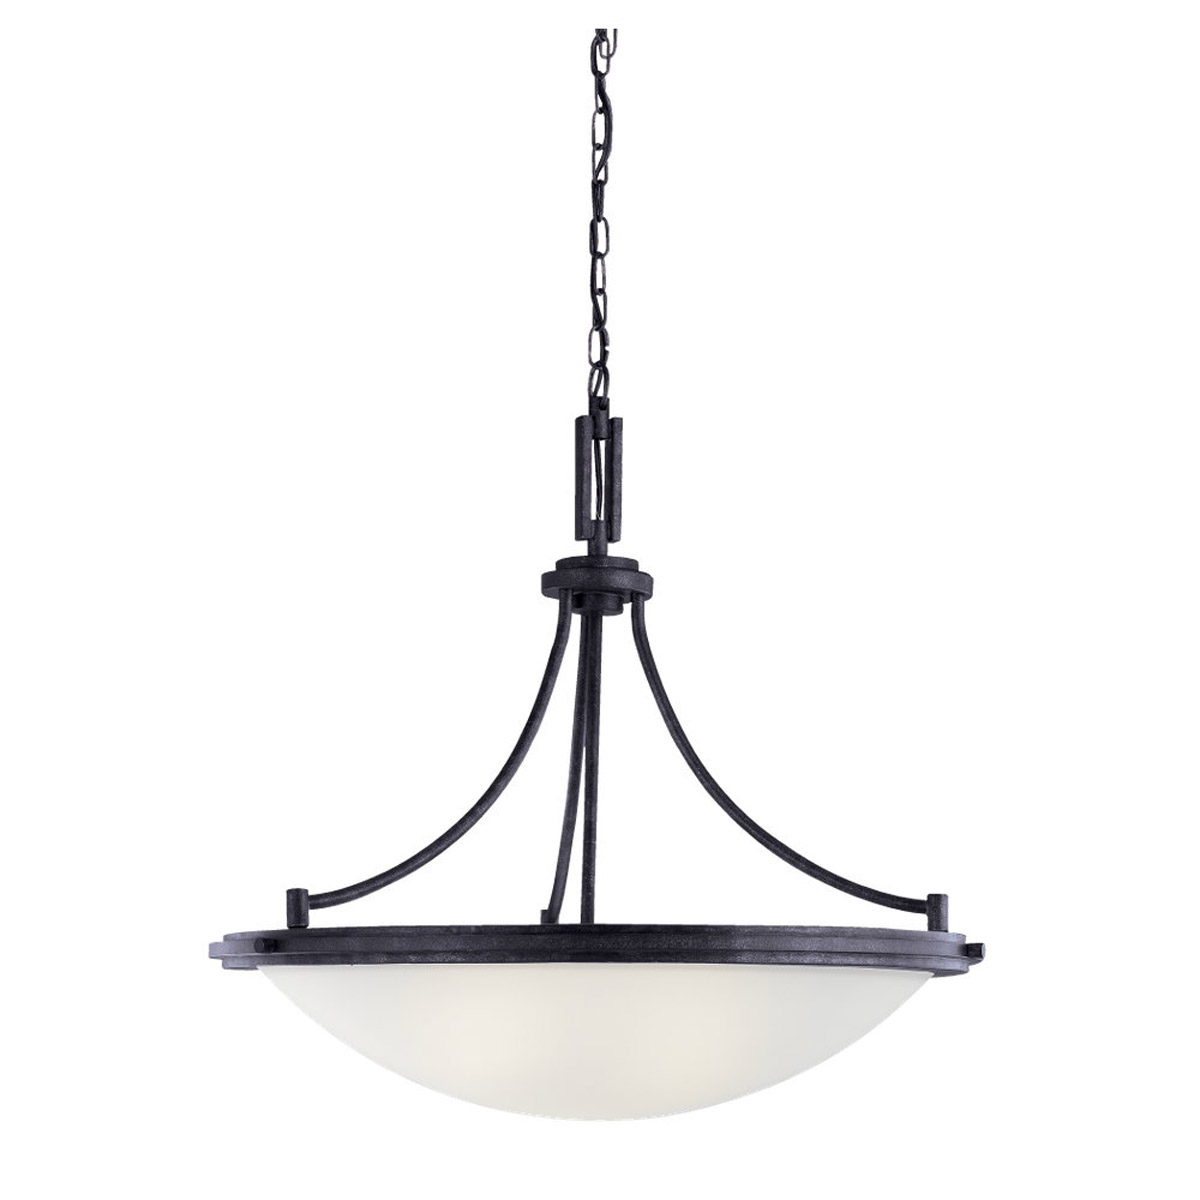 Sea Gull 65662-839 Winnetka 4 Light 28 inch Blacksmith Pendant Ceiling Light in Standard photo